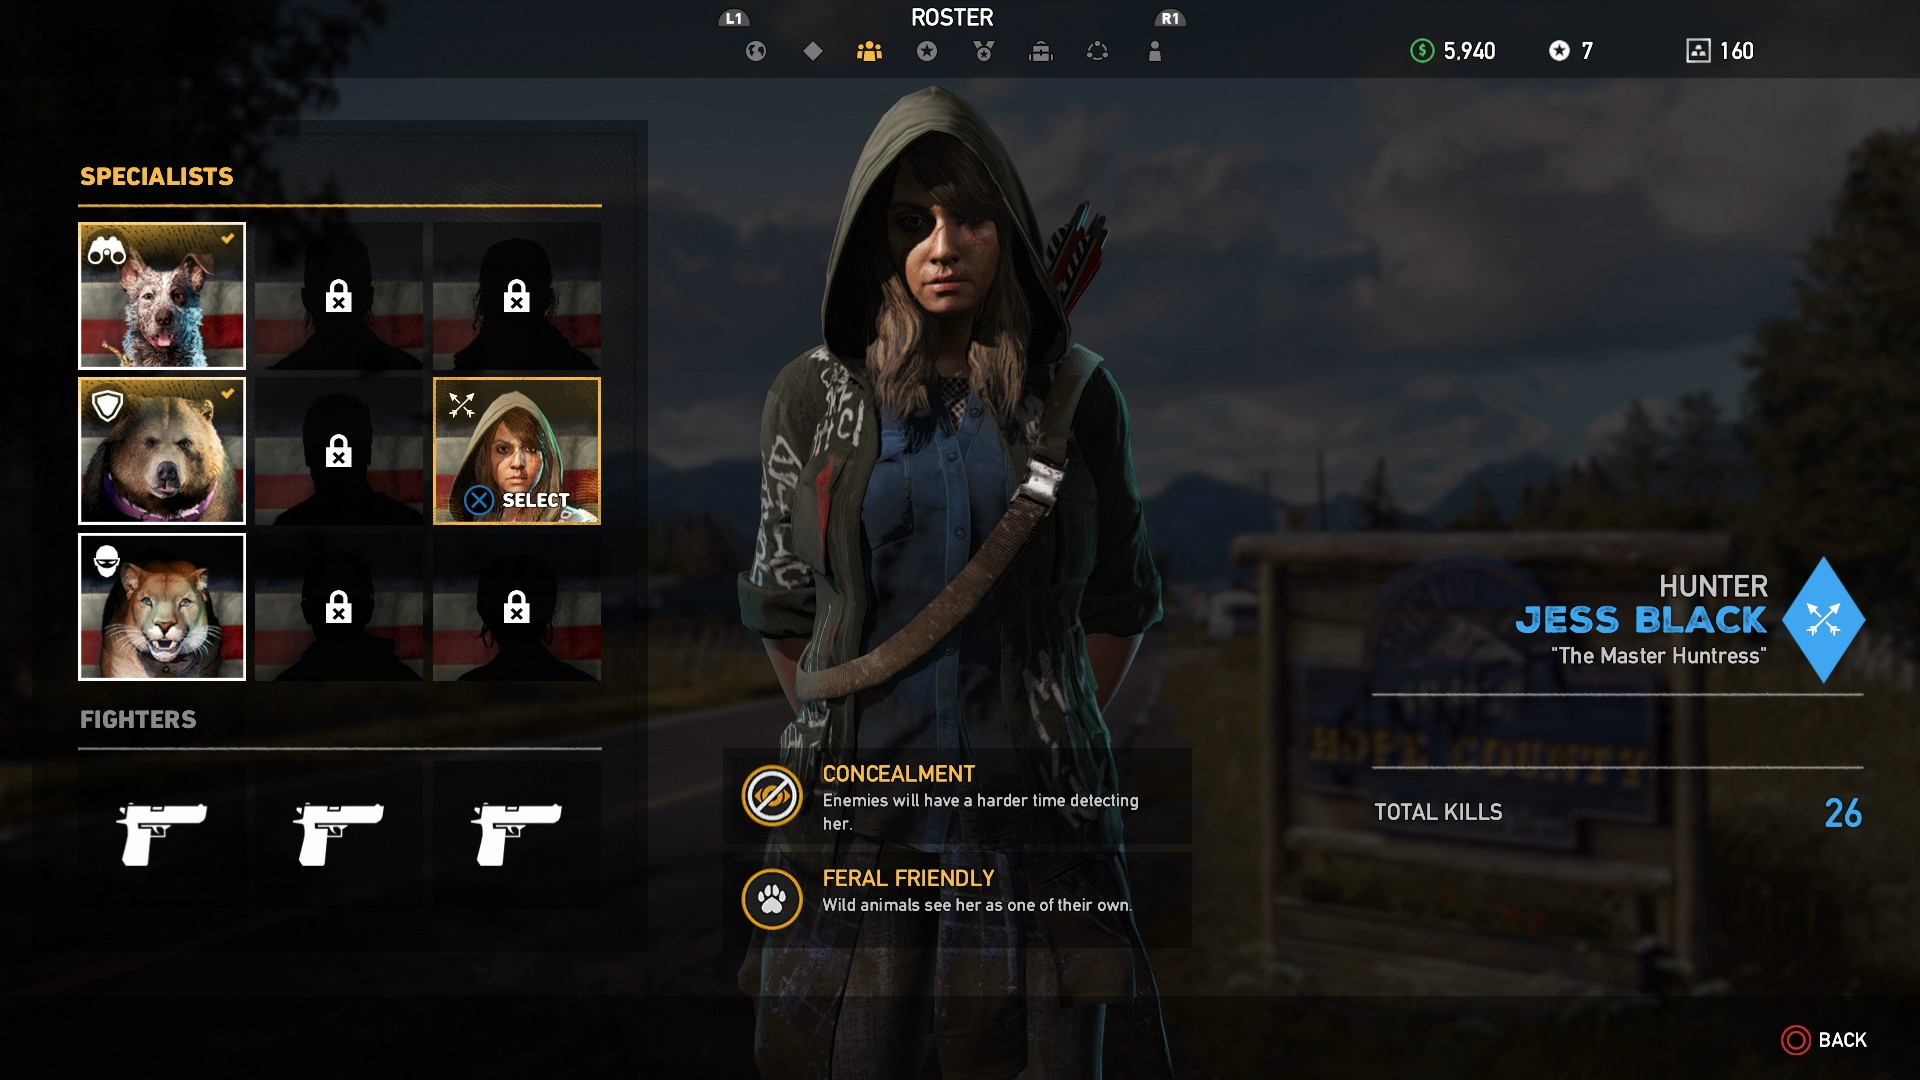 Far Cry 5 Guns for Hire - Best Guns for Hire Recruits and